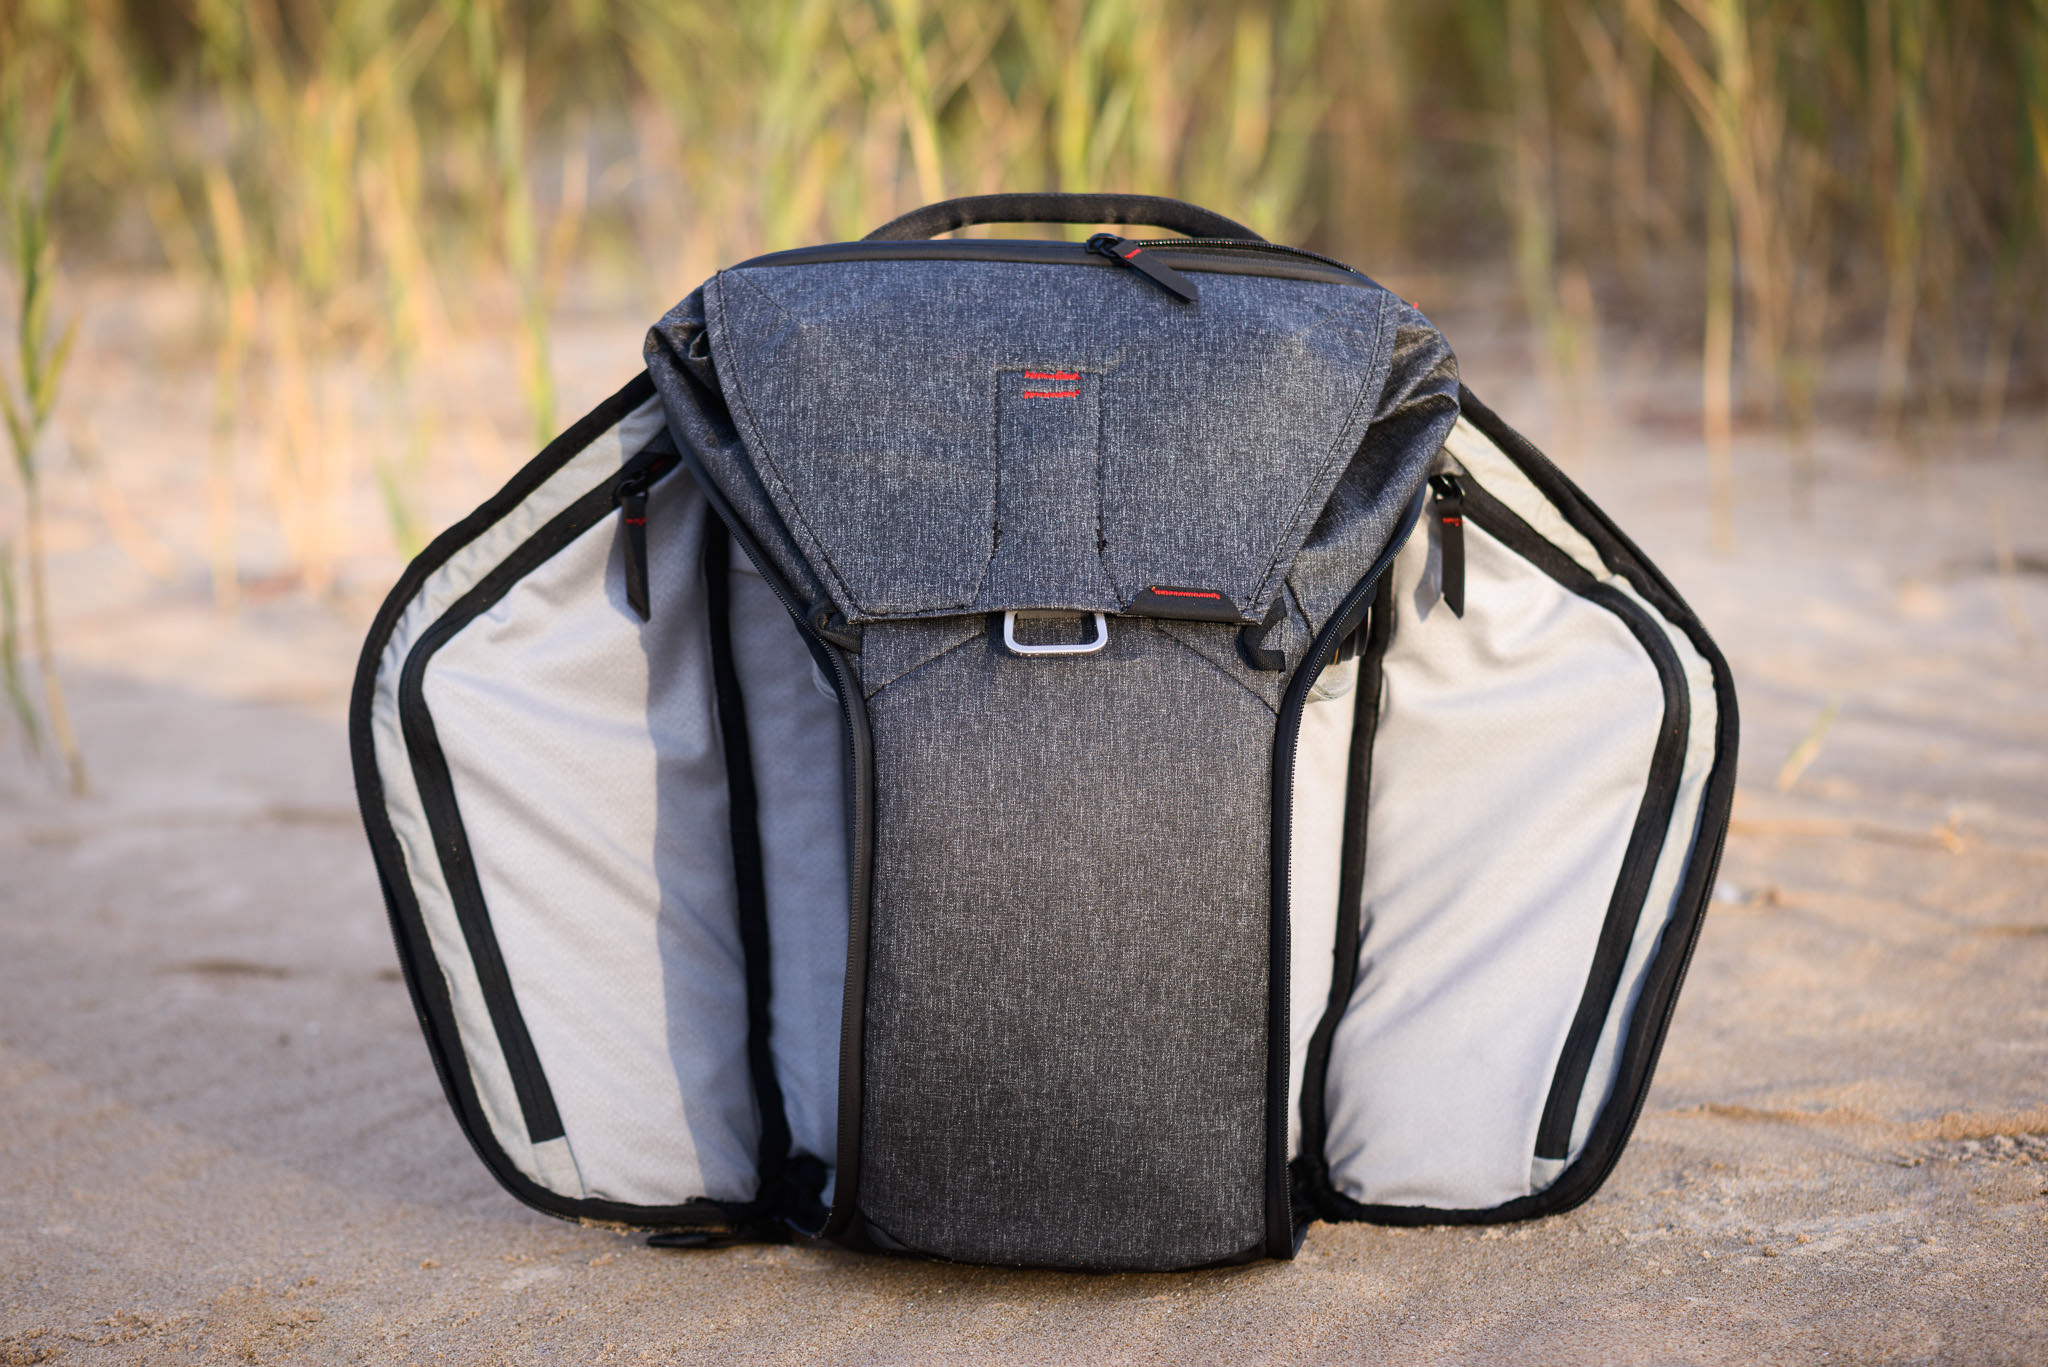 Dual side access pockets are a nice innovation that this bag offers —  perhaps the most useful feature it has. The origami dividers are the only  thing inside ... b8551f4c61d5e